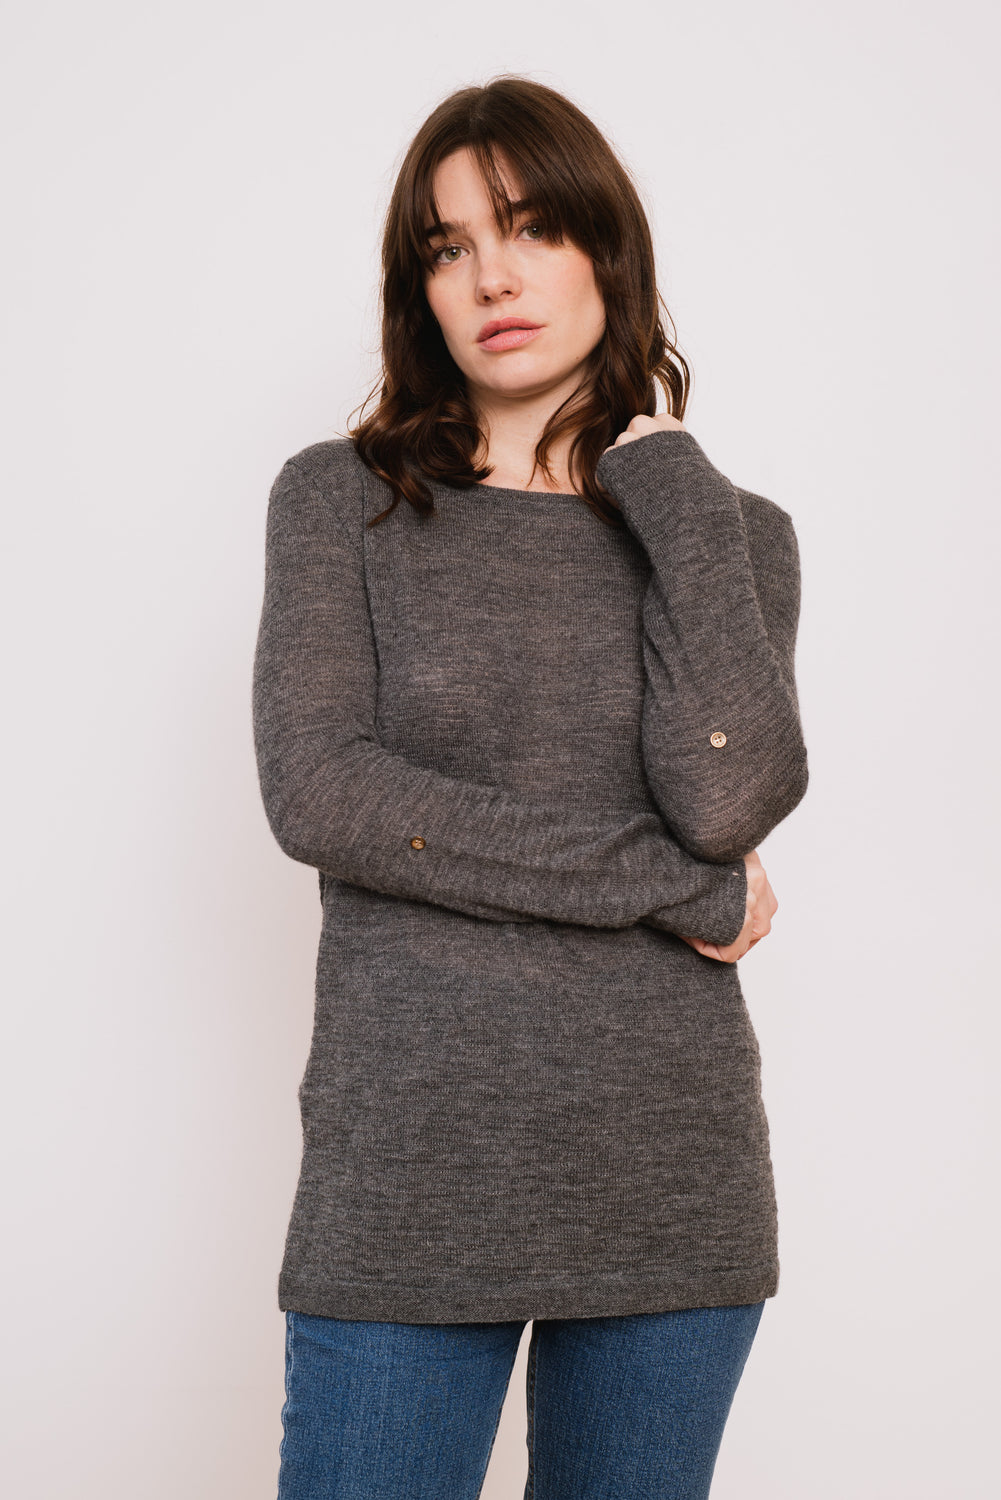 Ingrid Sweater in Stormy Grey